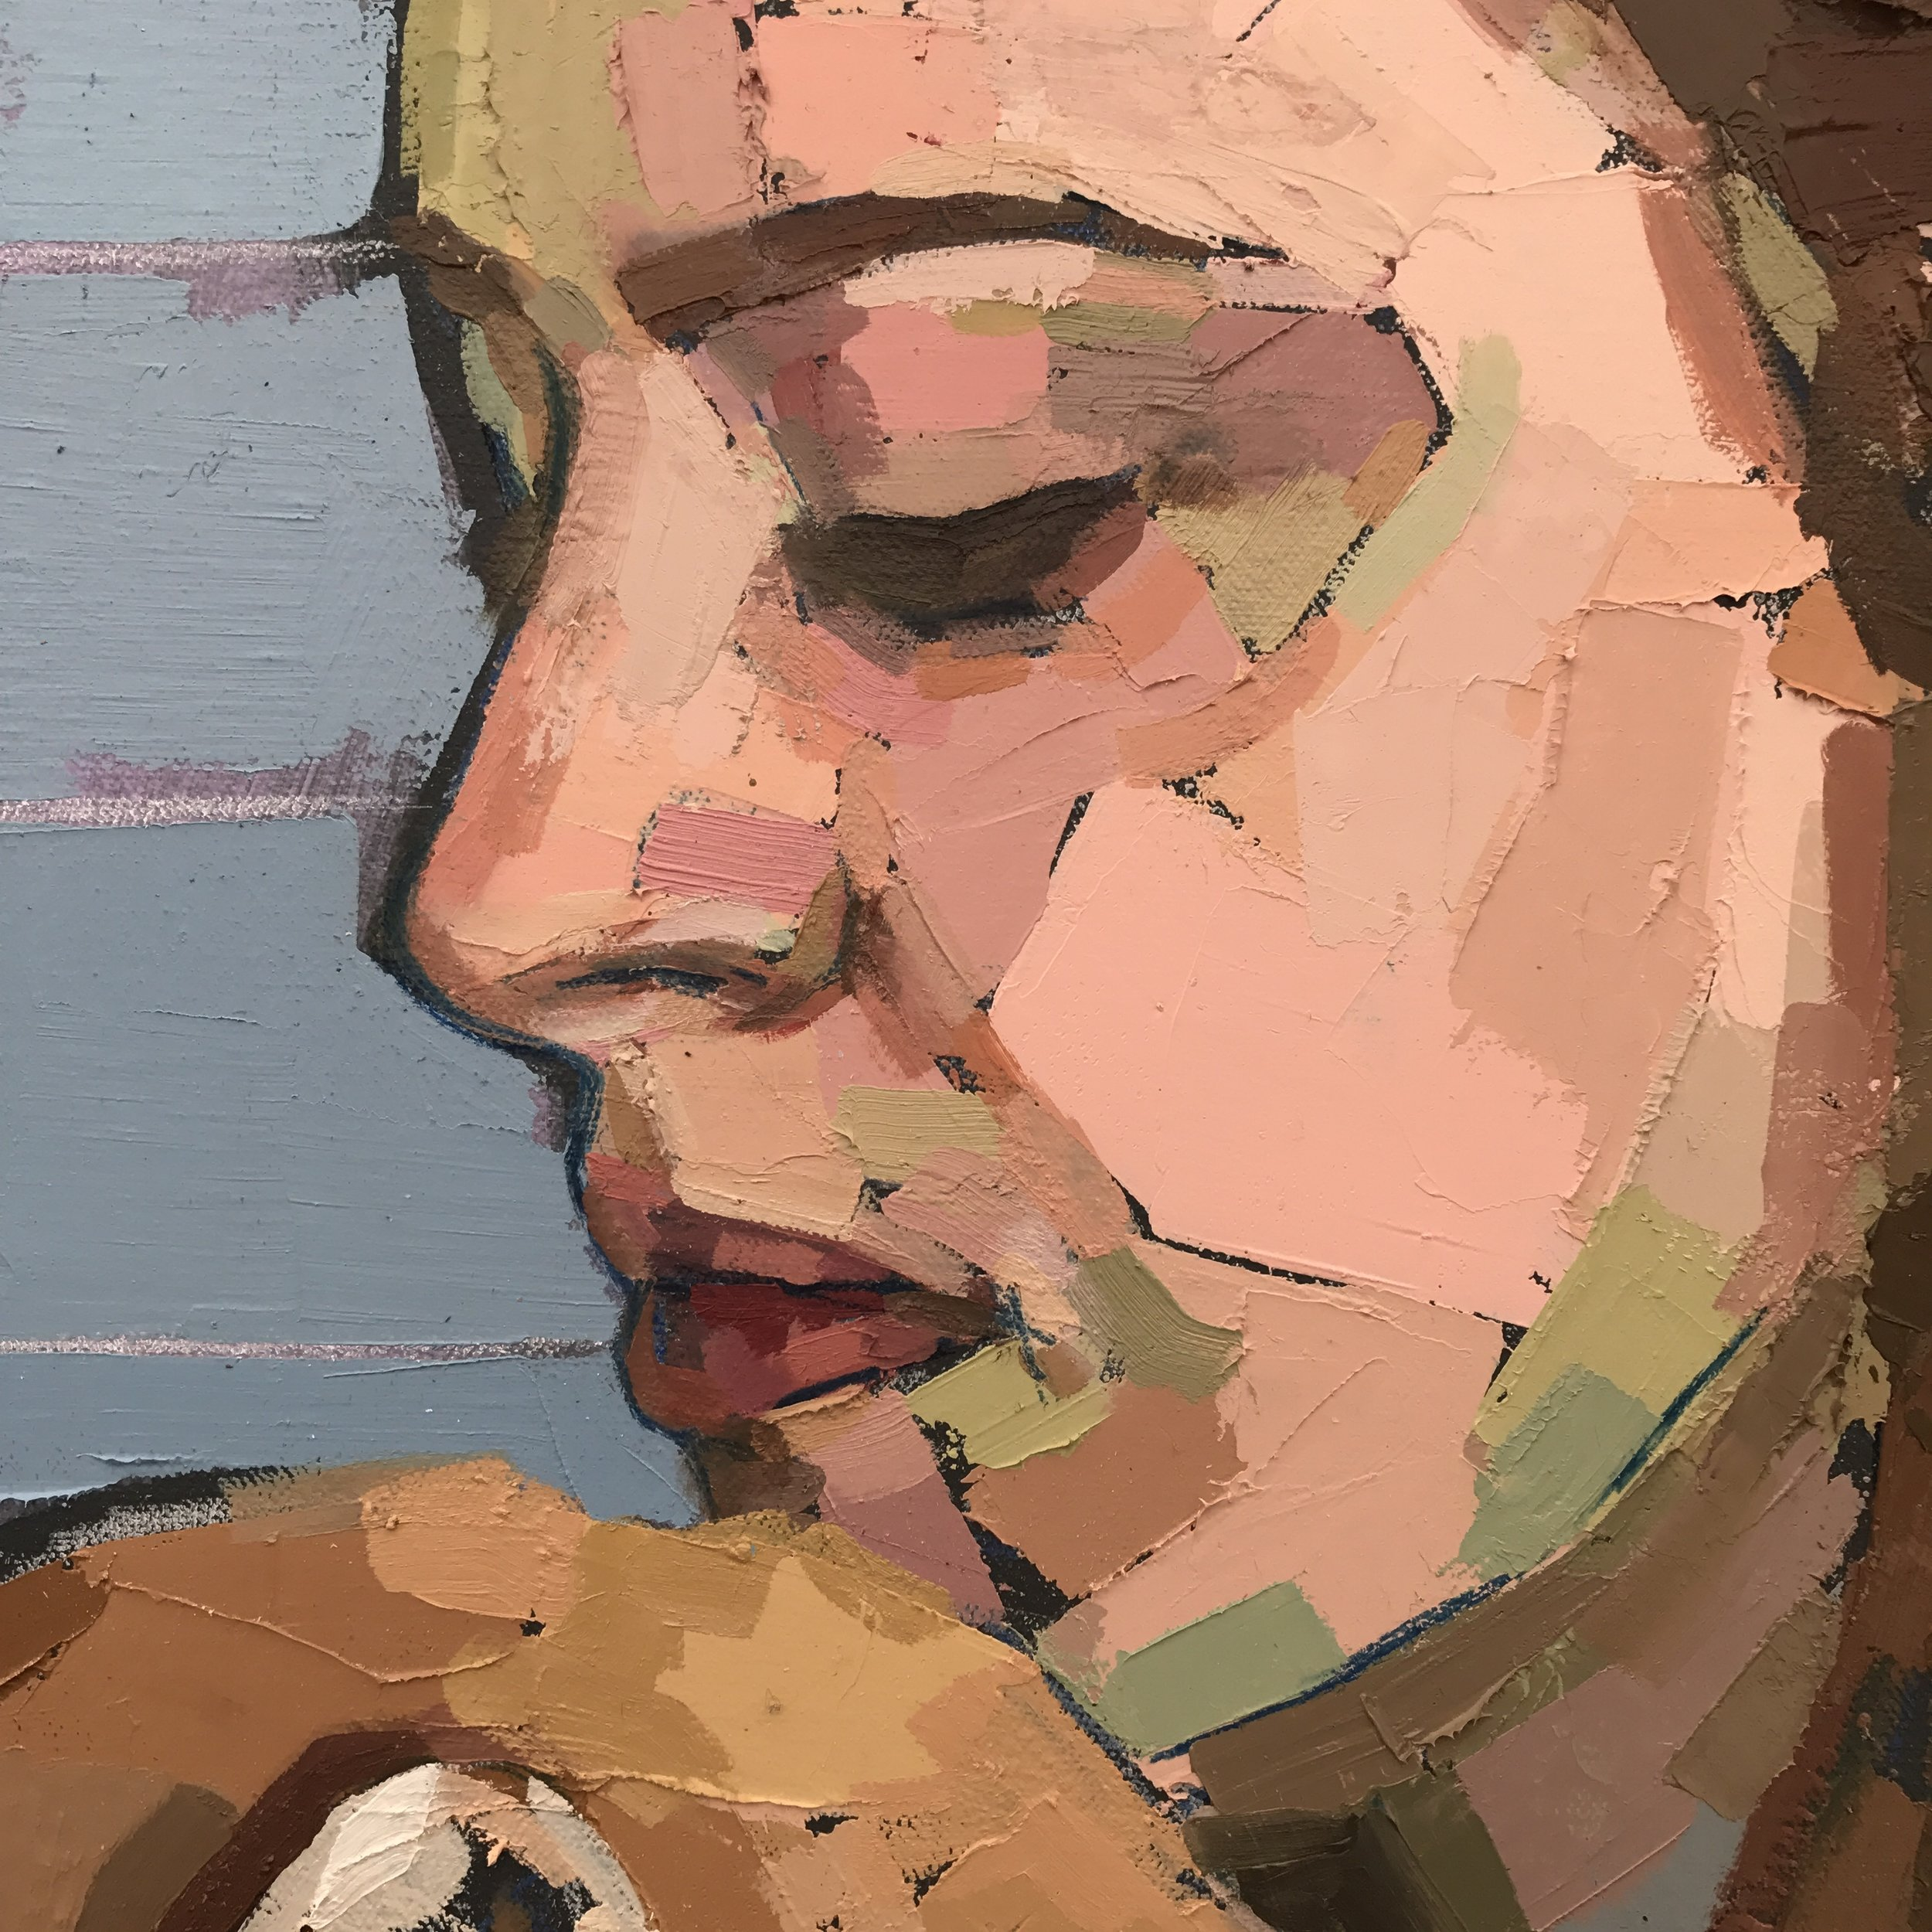 Mia Cross,  Homebody , detail, House paint, oil, colored pencil on canvas, 4'x6.5'